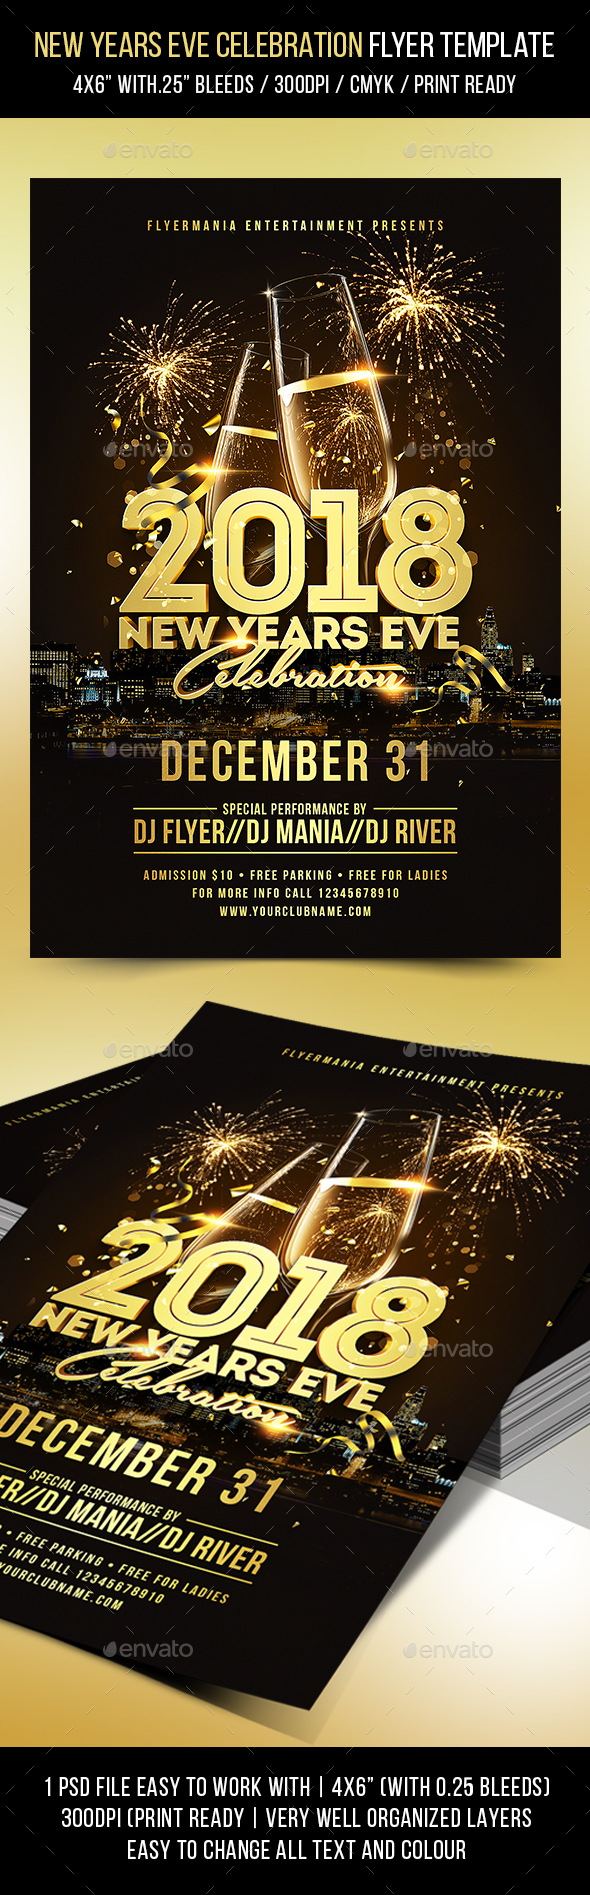 GraphicRiver New Years Eve Celebration Flyer Template 21159700